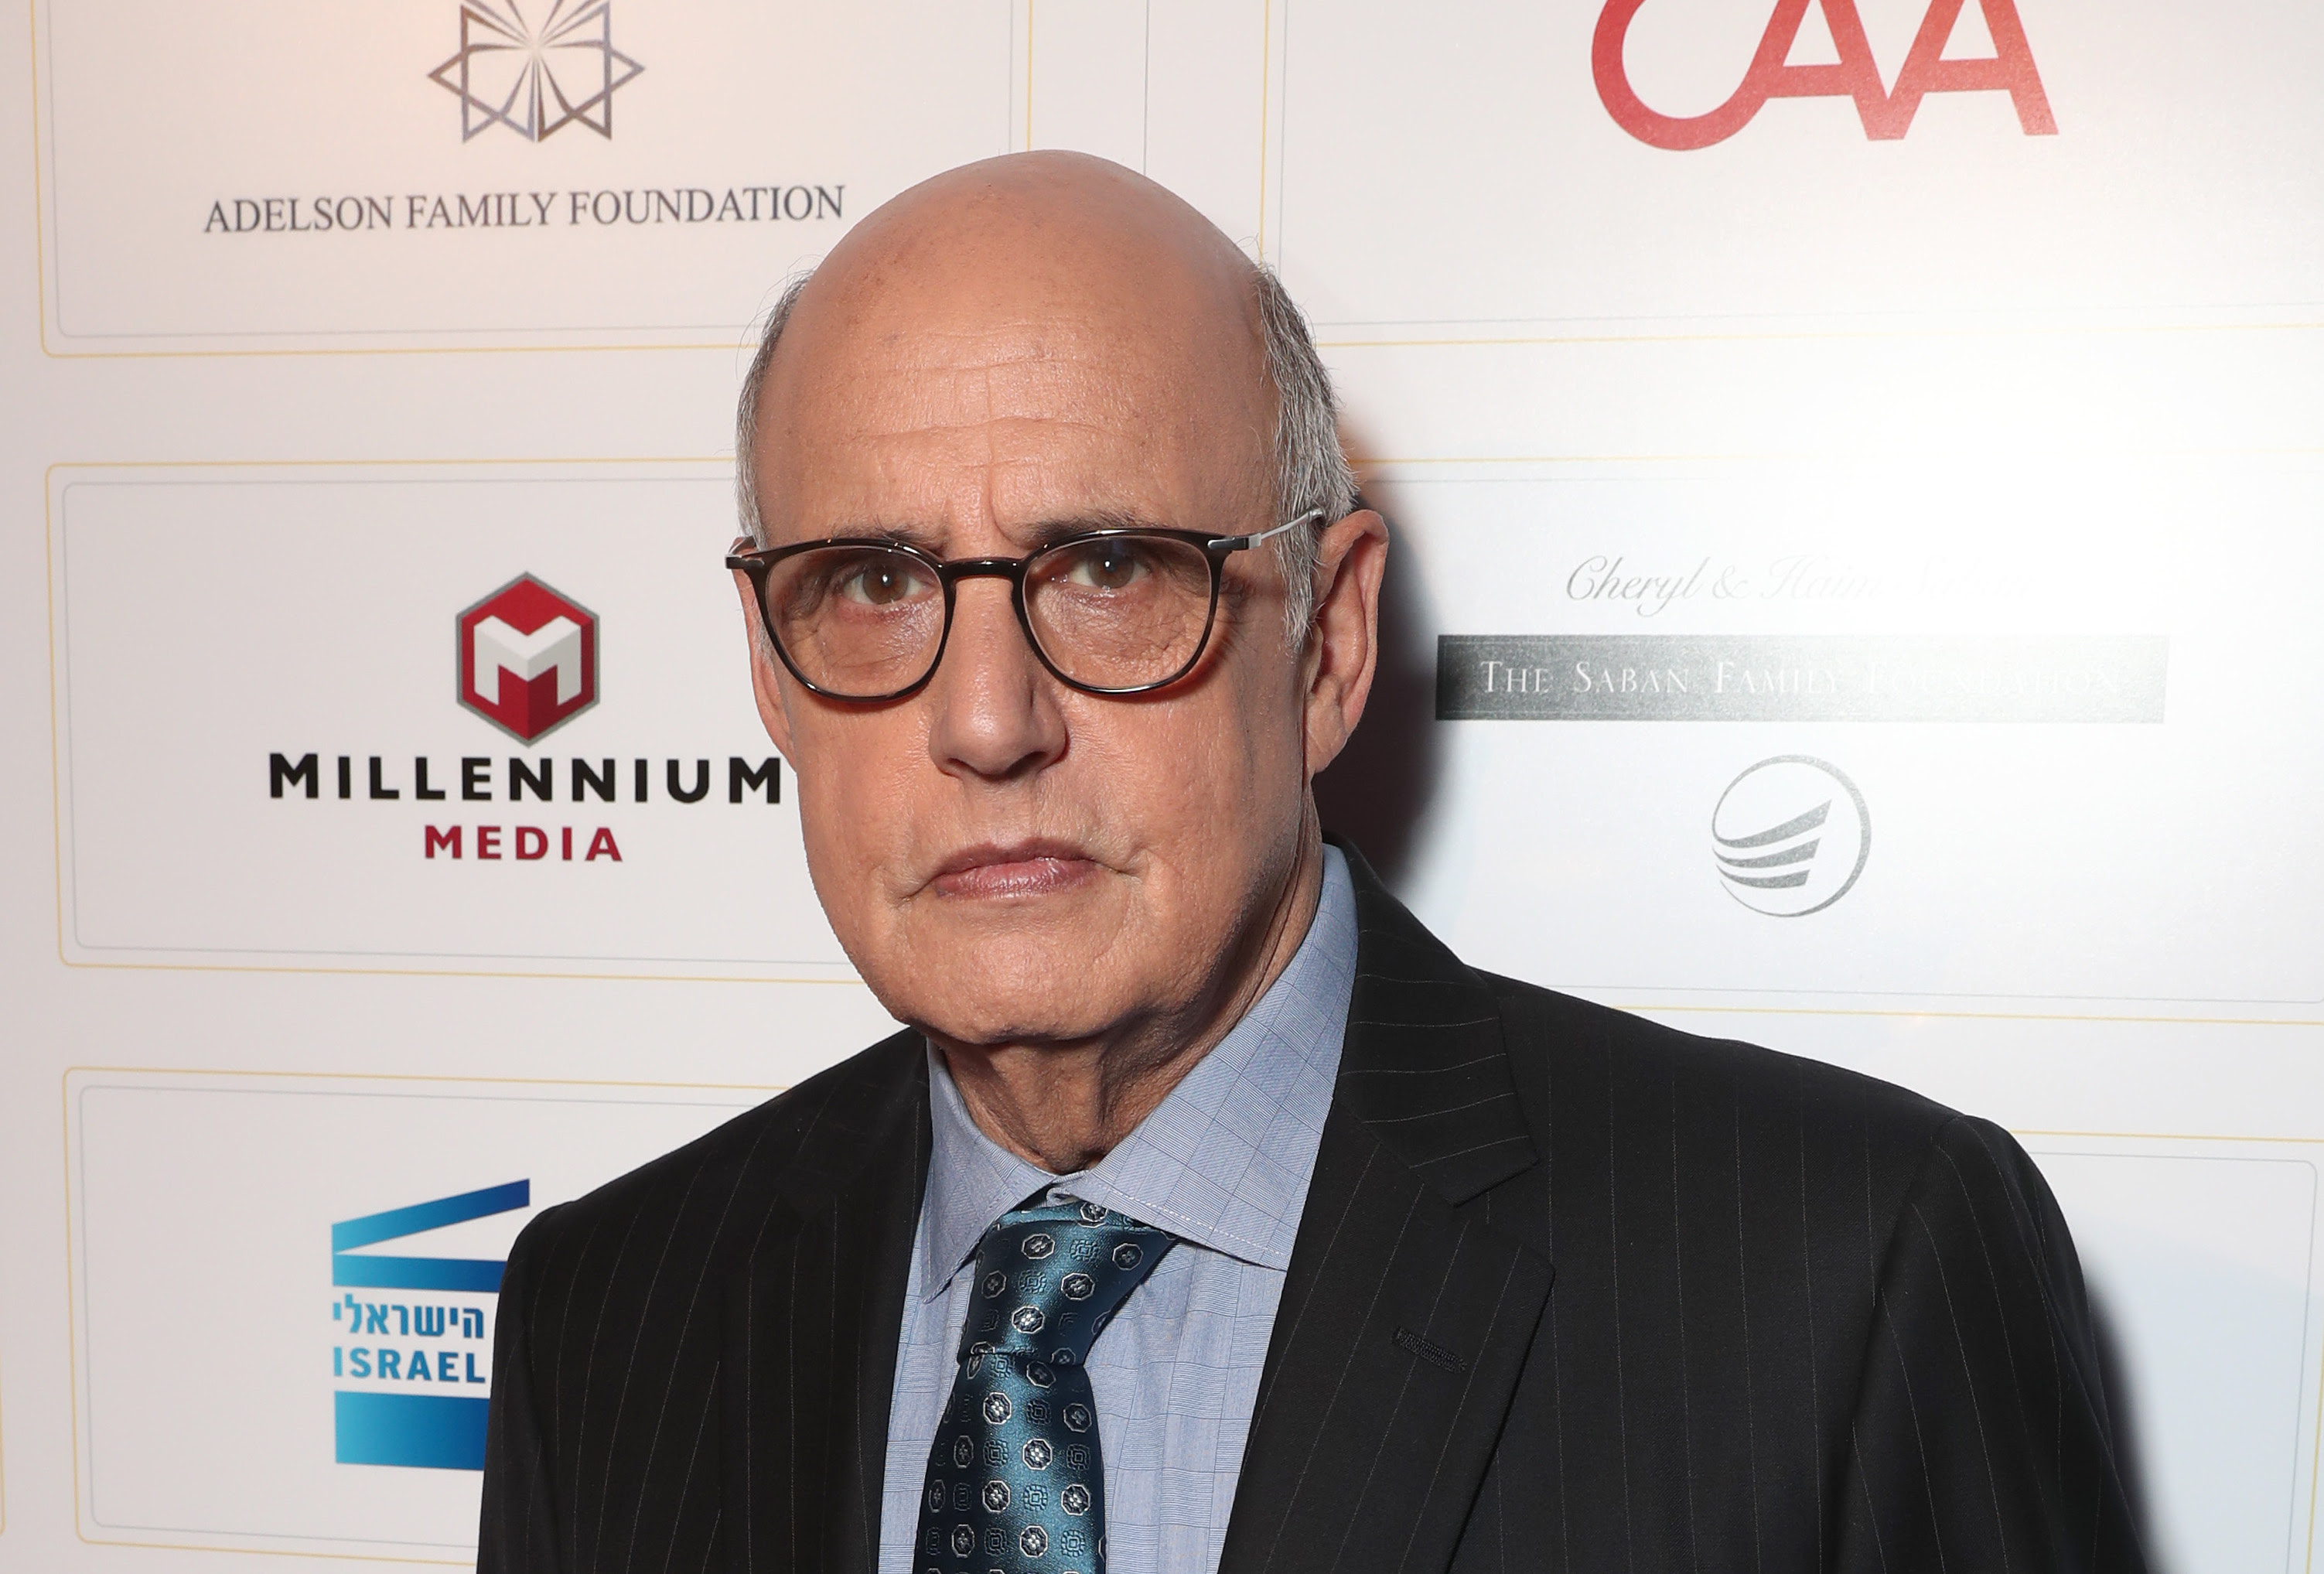 Jeffrey Tambor: Why 'The Death of Stalin' Director Chose to Keep Him in the Film